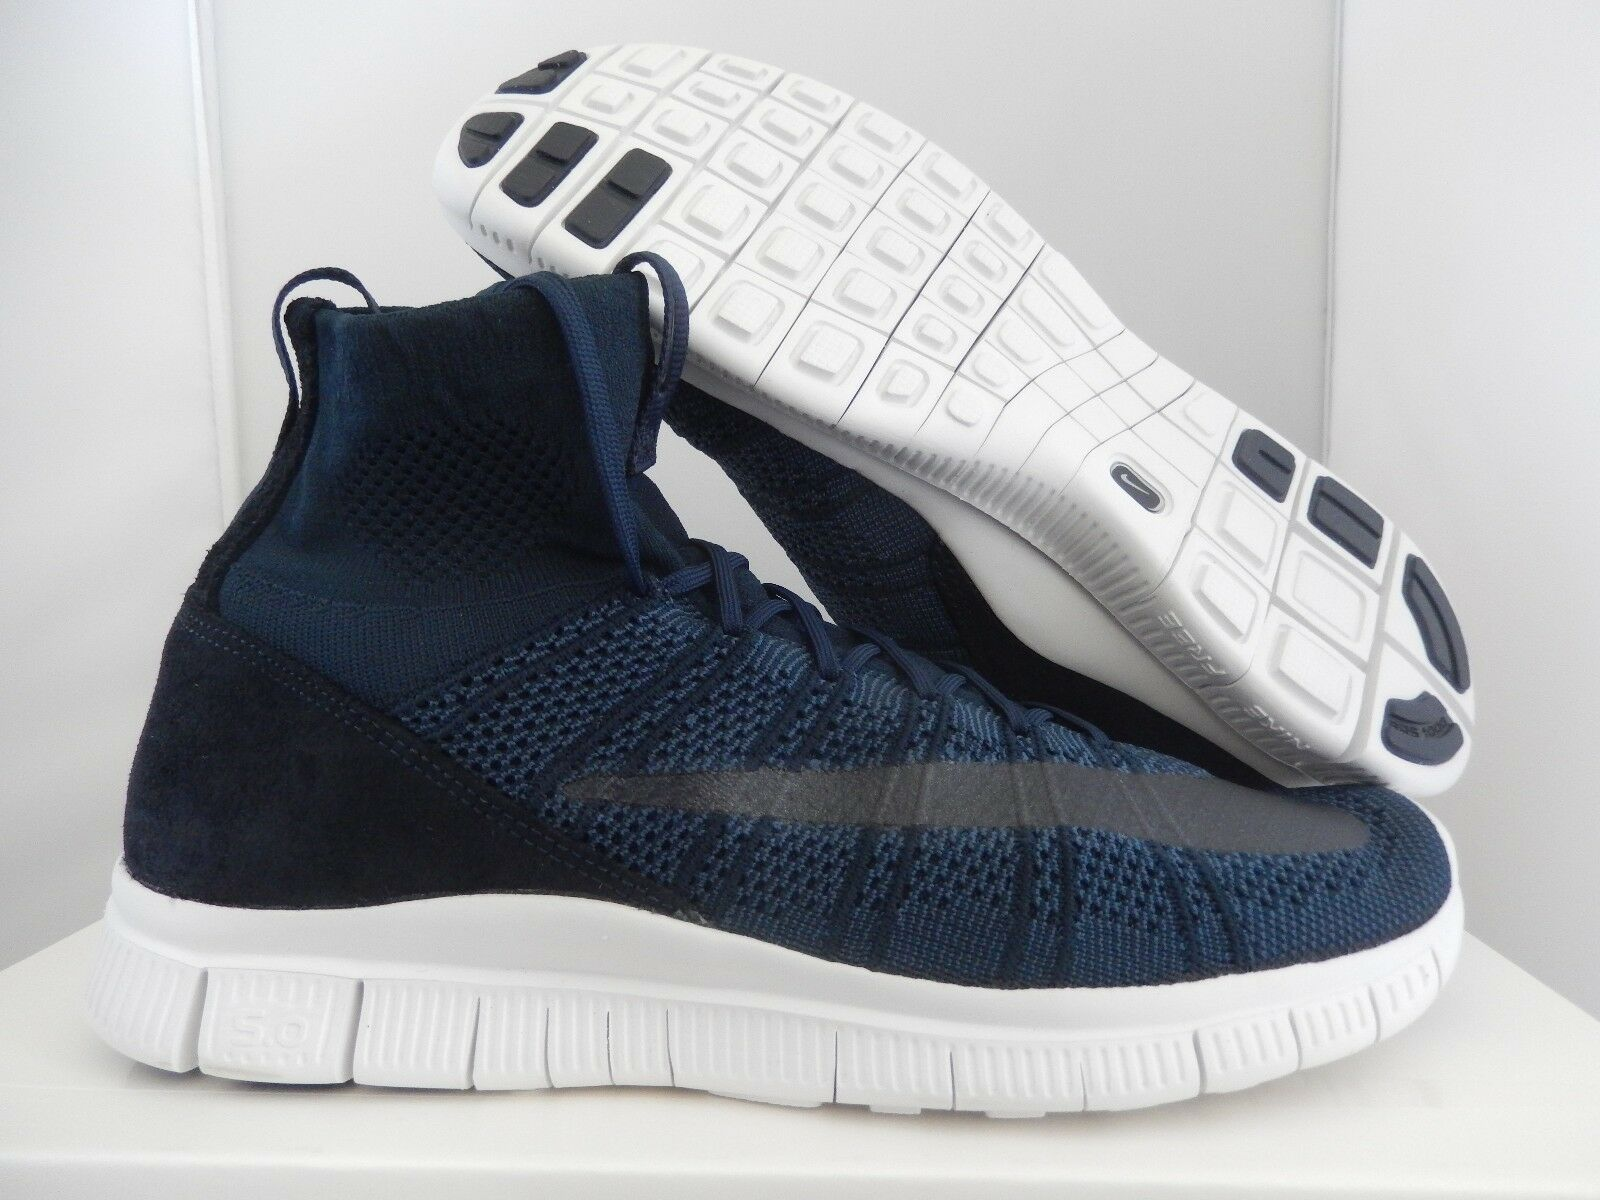 NIKE FREE MERCURIAL SUPERFLY SP DARK OBSIDIAN NAVY BLUE SZ 10 [667978-441]